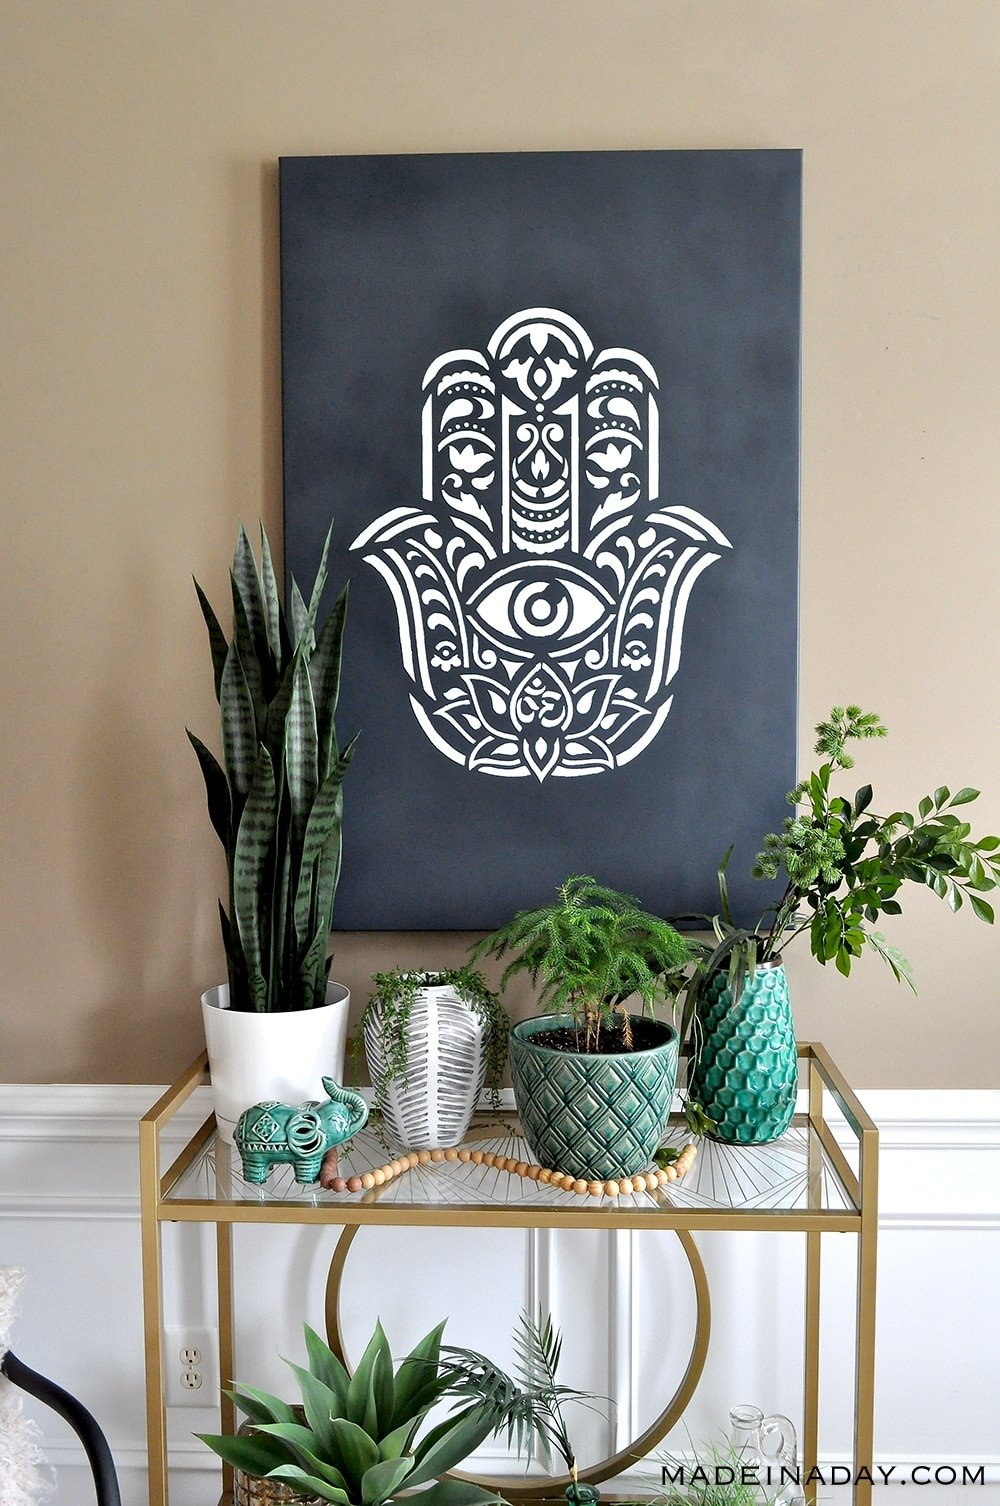 Hamsa Palm Stenciled Wall Art, Hamsa Design, Hand of Fatima